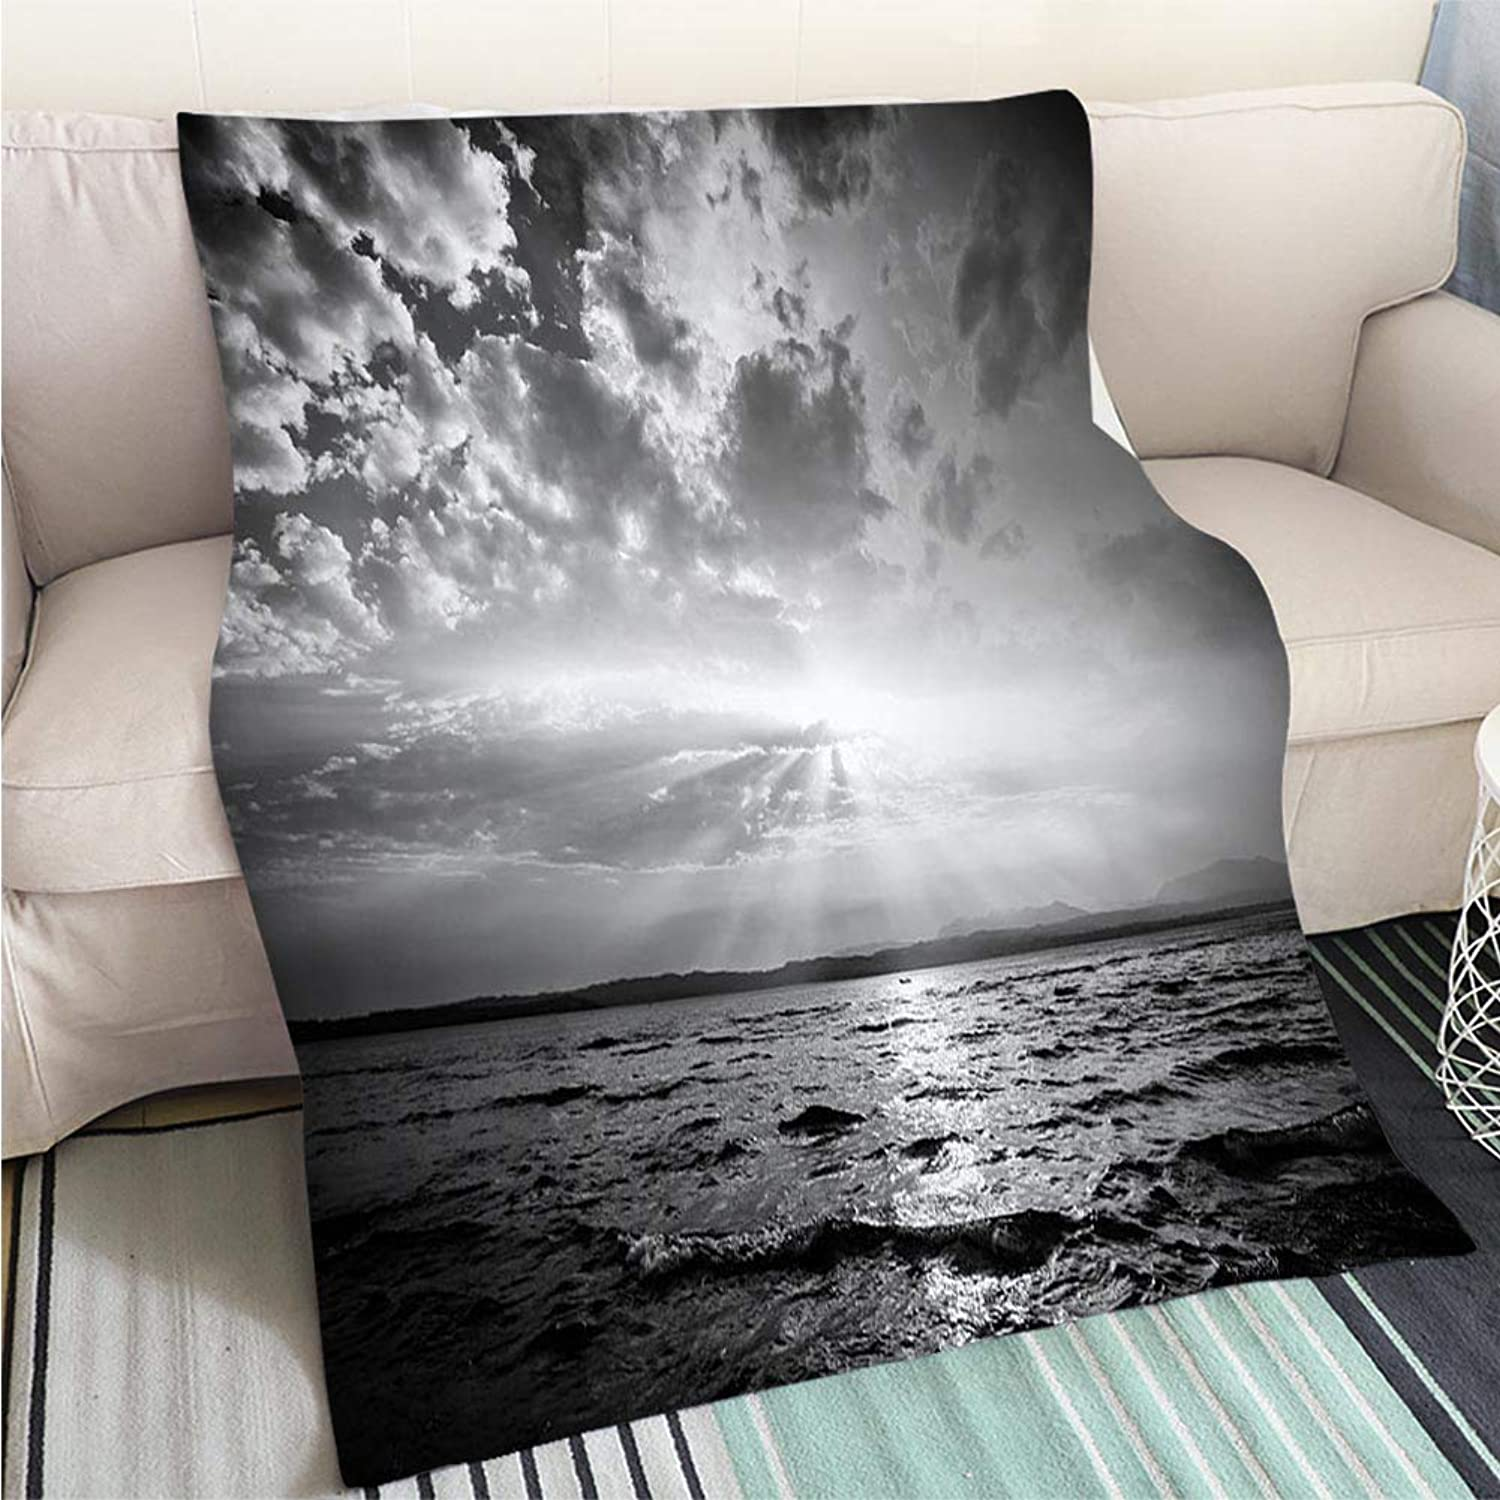 Art Design Photos Cool Quilt Lake at Sunset Hypoallergenic Blanket for Bed Couch Chair